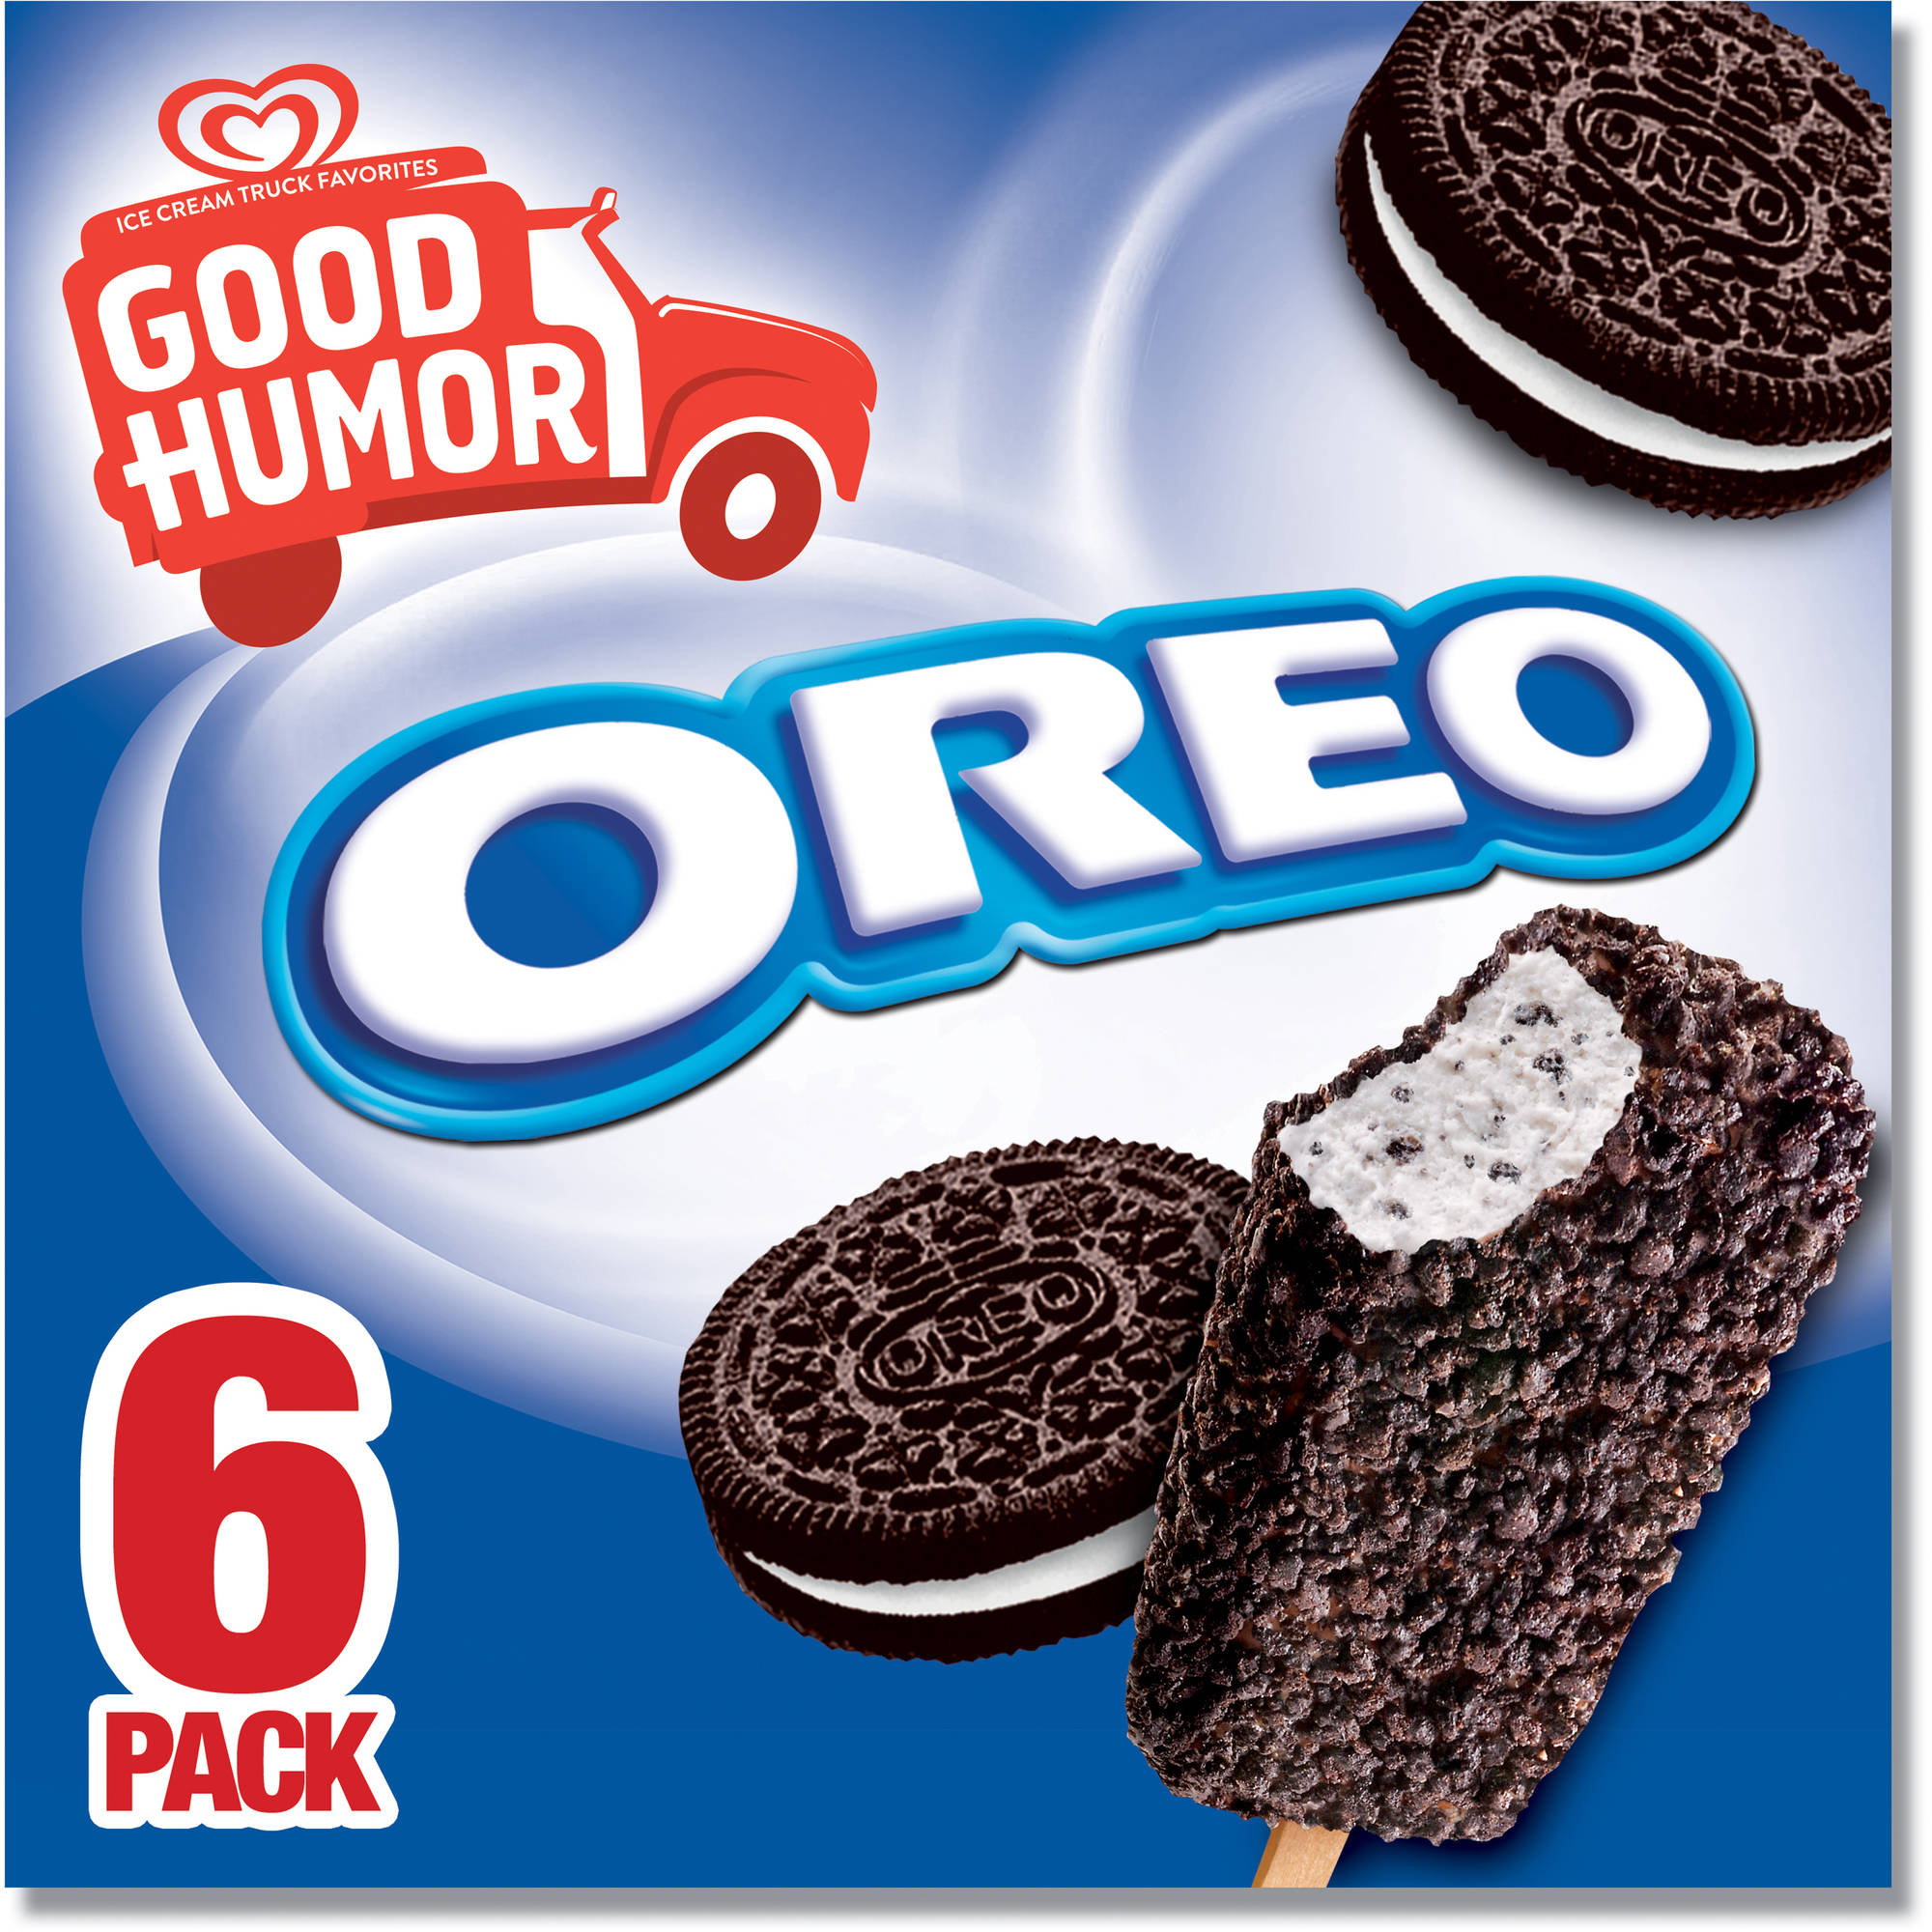 Good Humor is a brand of ice cream novelties sold from ice cream trucks as well as stores and other retail outlets. Originally, Good Humors were chocolate-coated ice cream bars on a stick, but the line was expanded over the years to include a wide range of novelties.